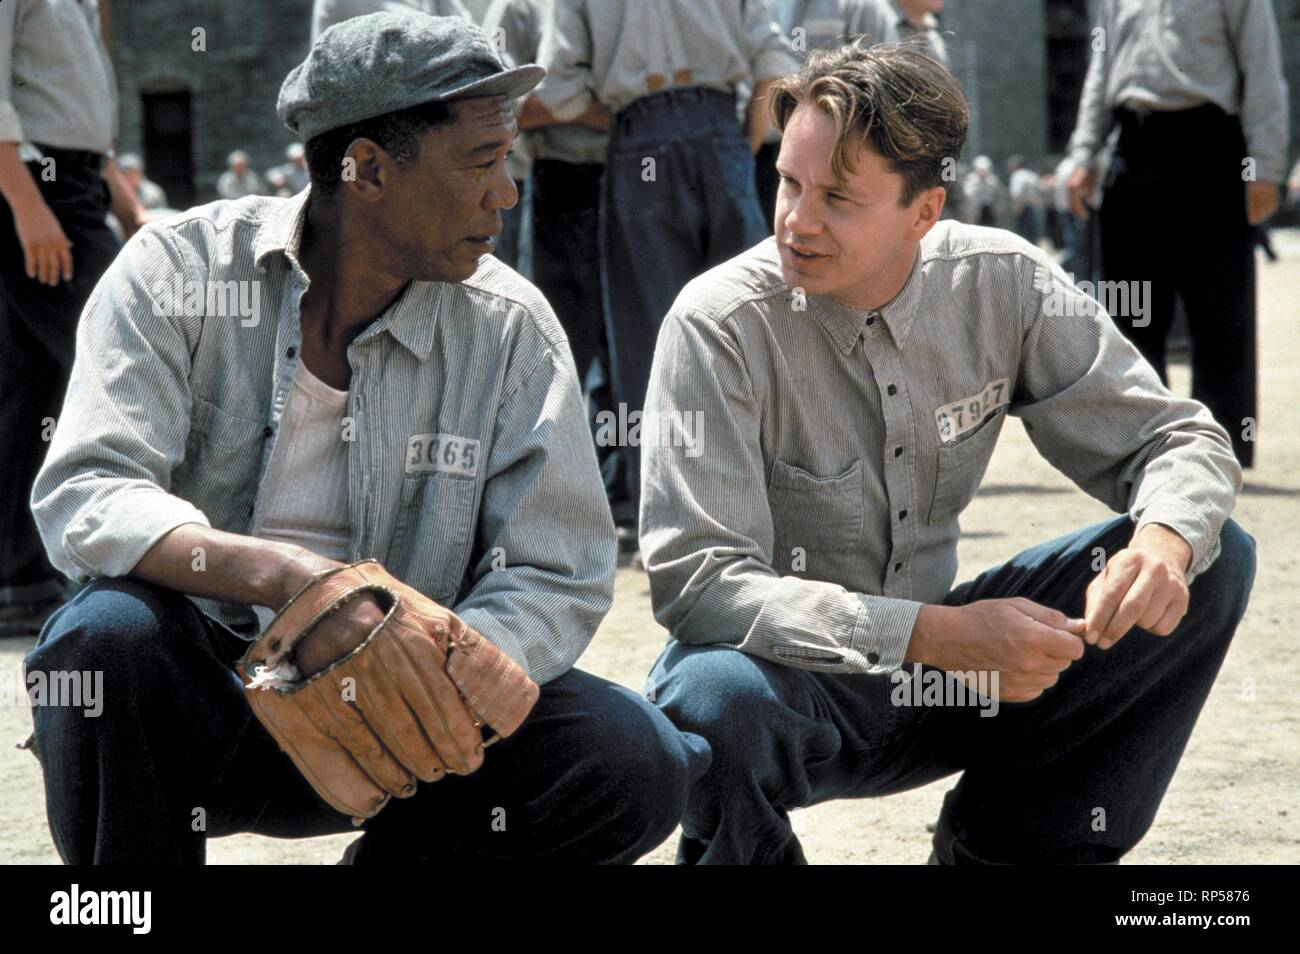 FREEMAN,ROBBINS, THE SHAWSHANK REDEMPTION, 1994 - Stock Image